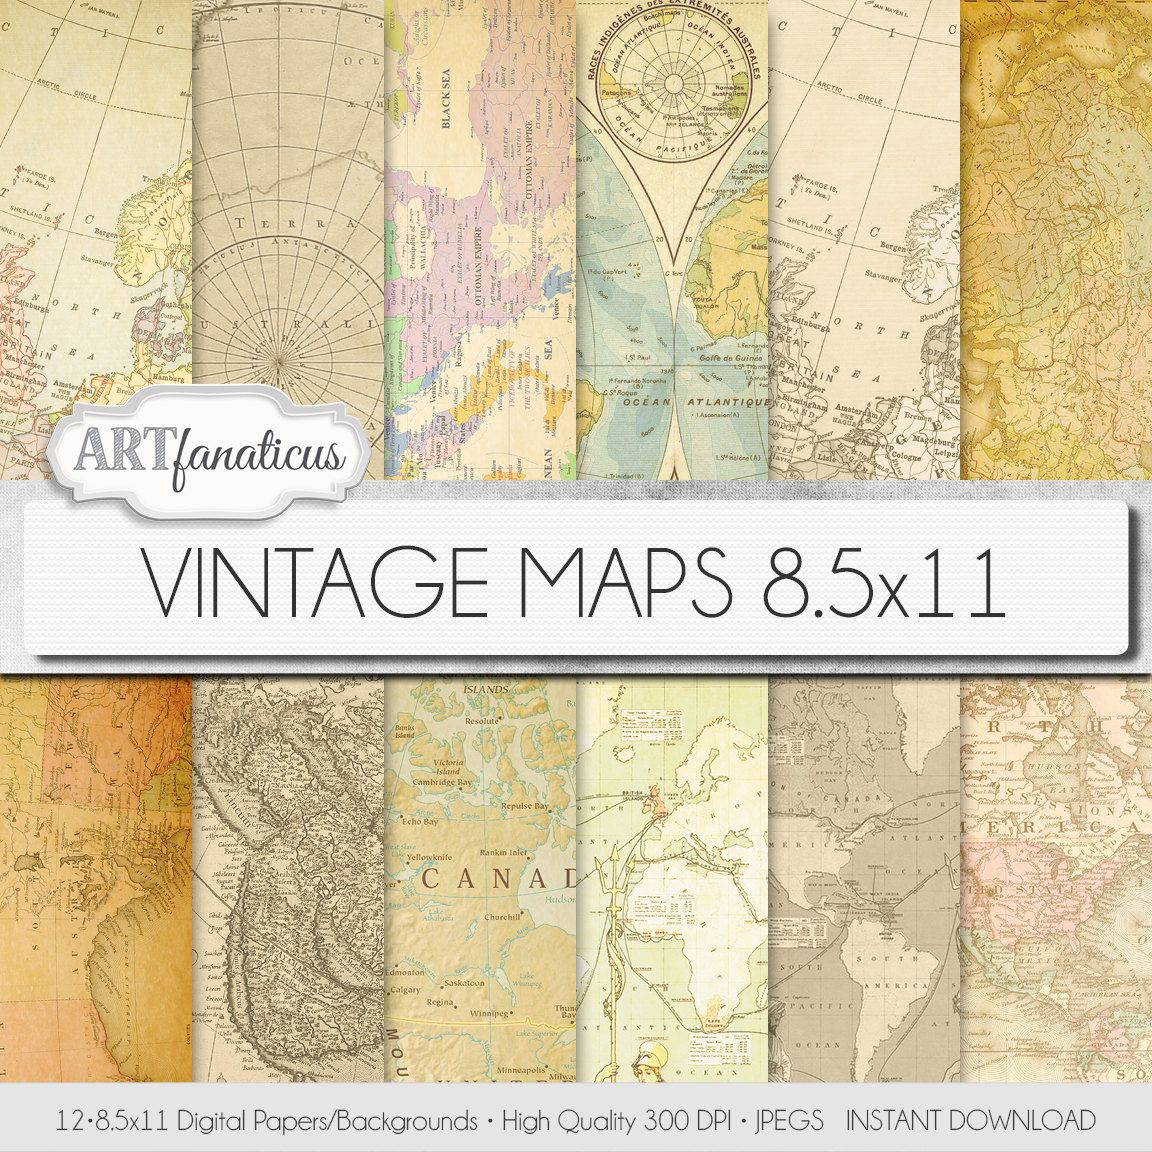 Vintage maps 85x11 digital paper vintage maps backgrounds shop the latest paper world map products from scroll forever officebiz boxcolors beijing supply and more on wanelo the worlds biggest shopping mall gumiabroncs Image collections